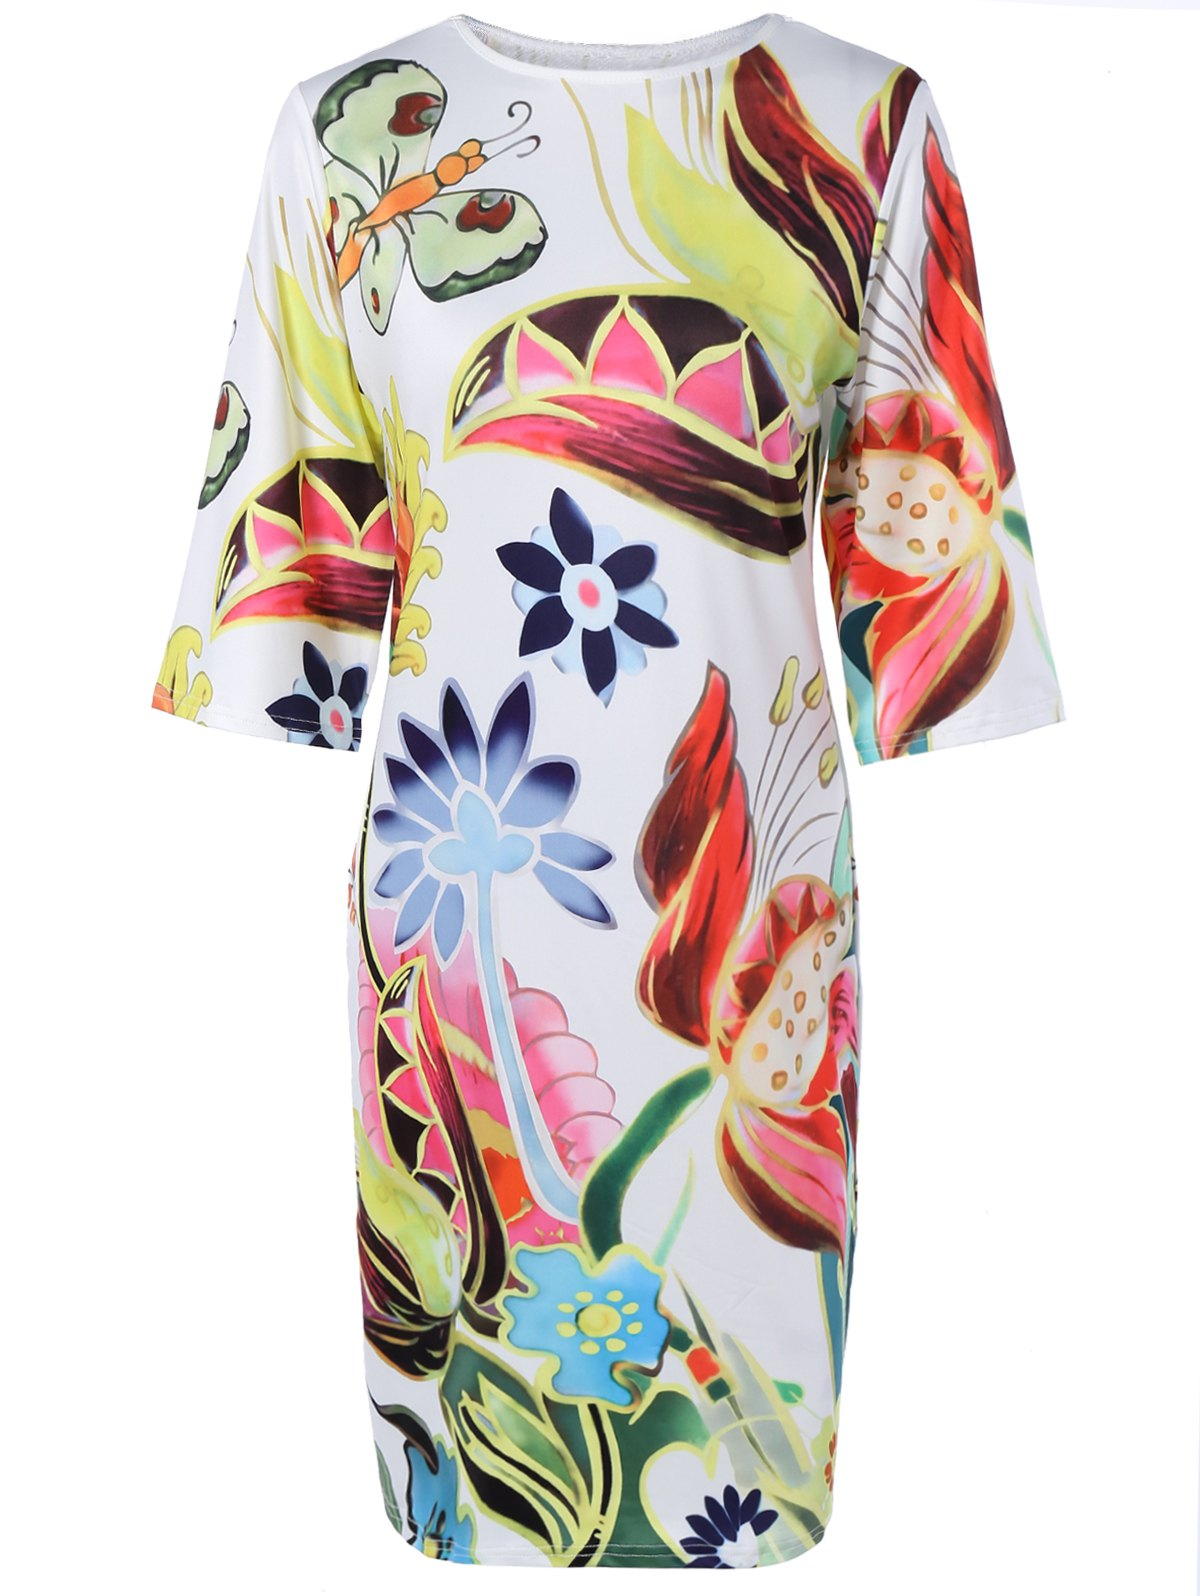 Colorized Half Sleeve Floral Dress For Women - COLORMIX 2XL